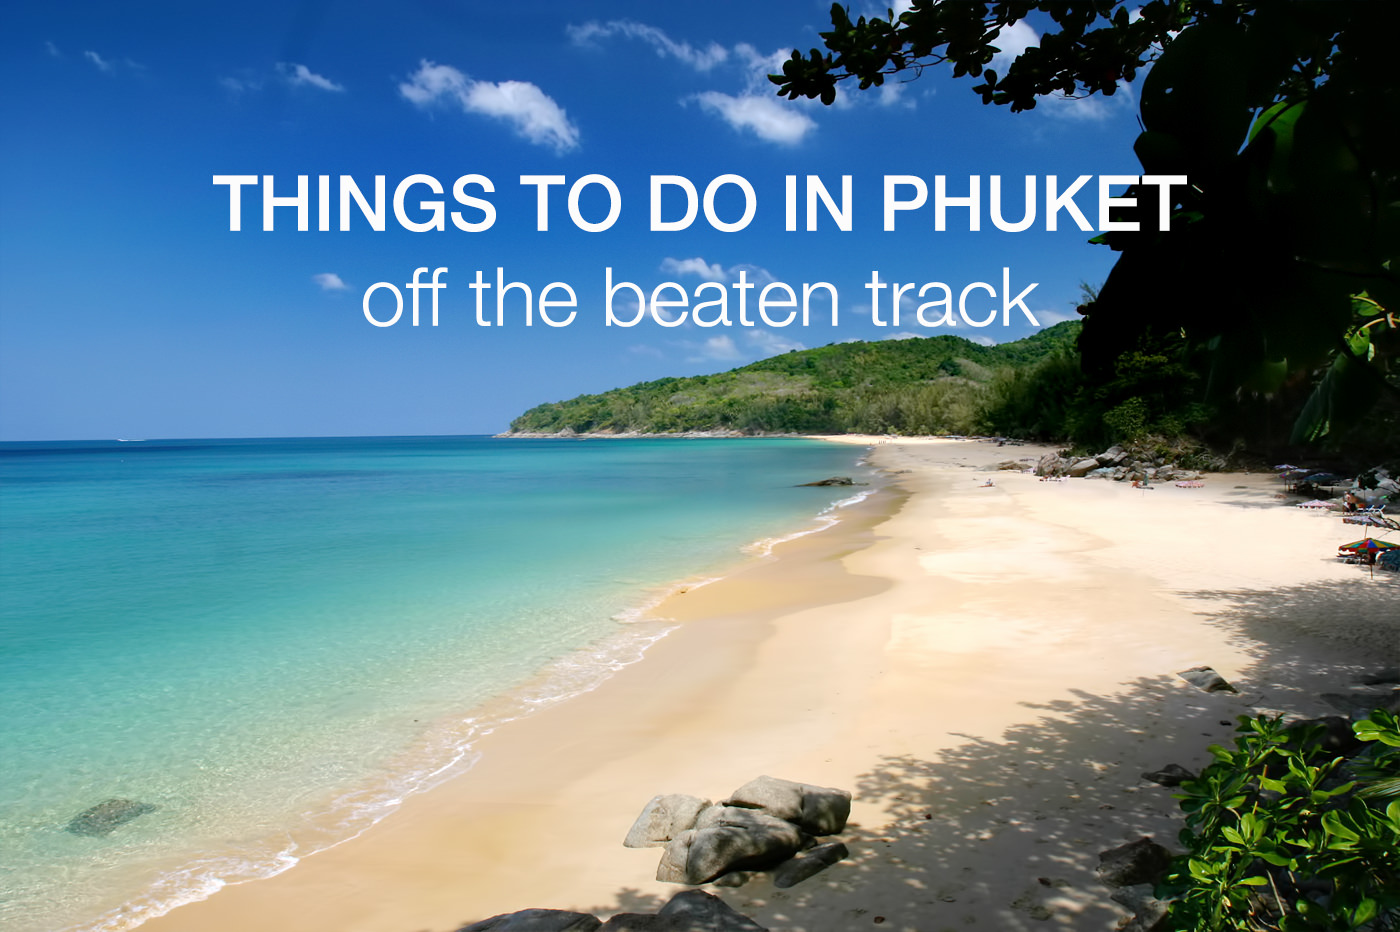 12 Things to Do in Phuket Off the Beaten Track (updated!)